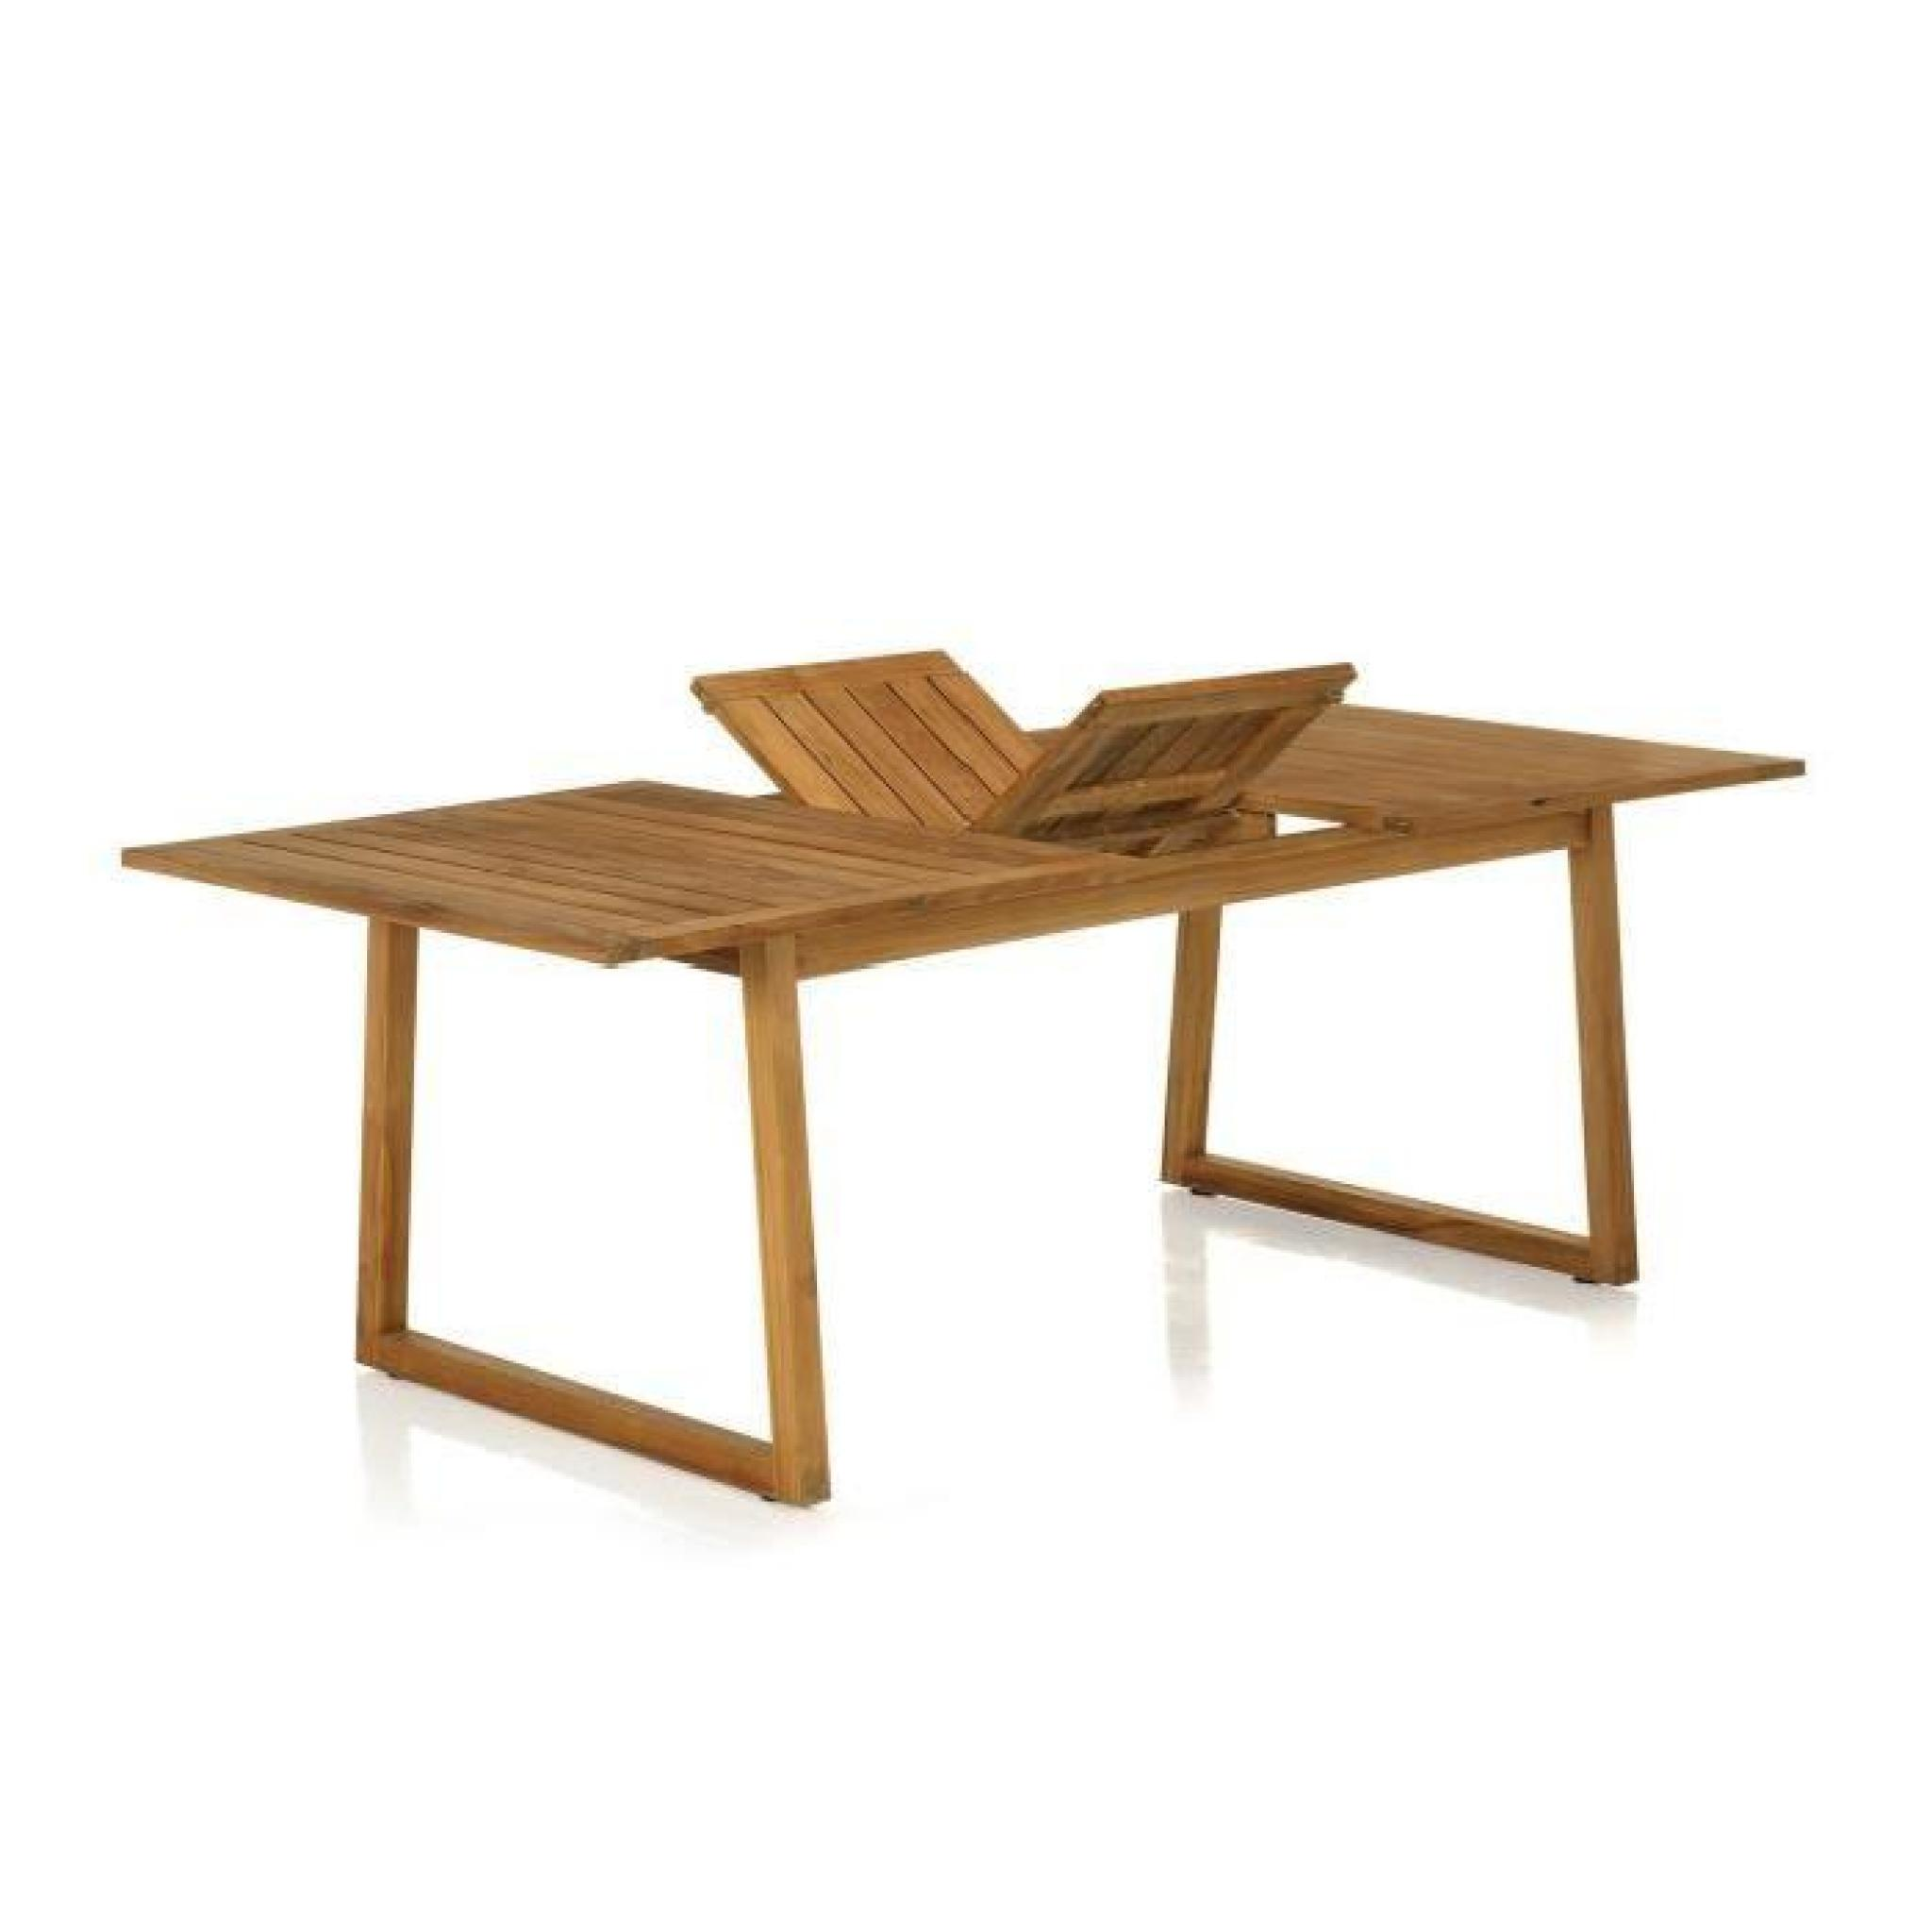 mia-table-de-jardin-rectangulaire-en-teck-a-allong-2 Frais De Table Extensible Cdiscount